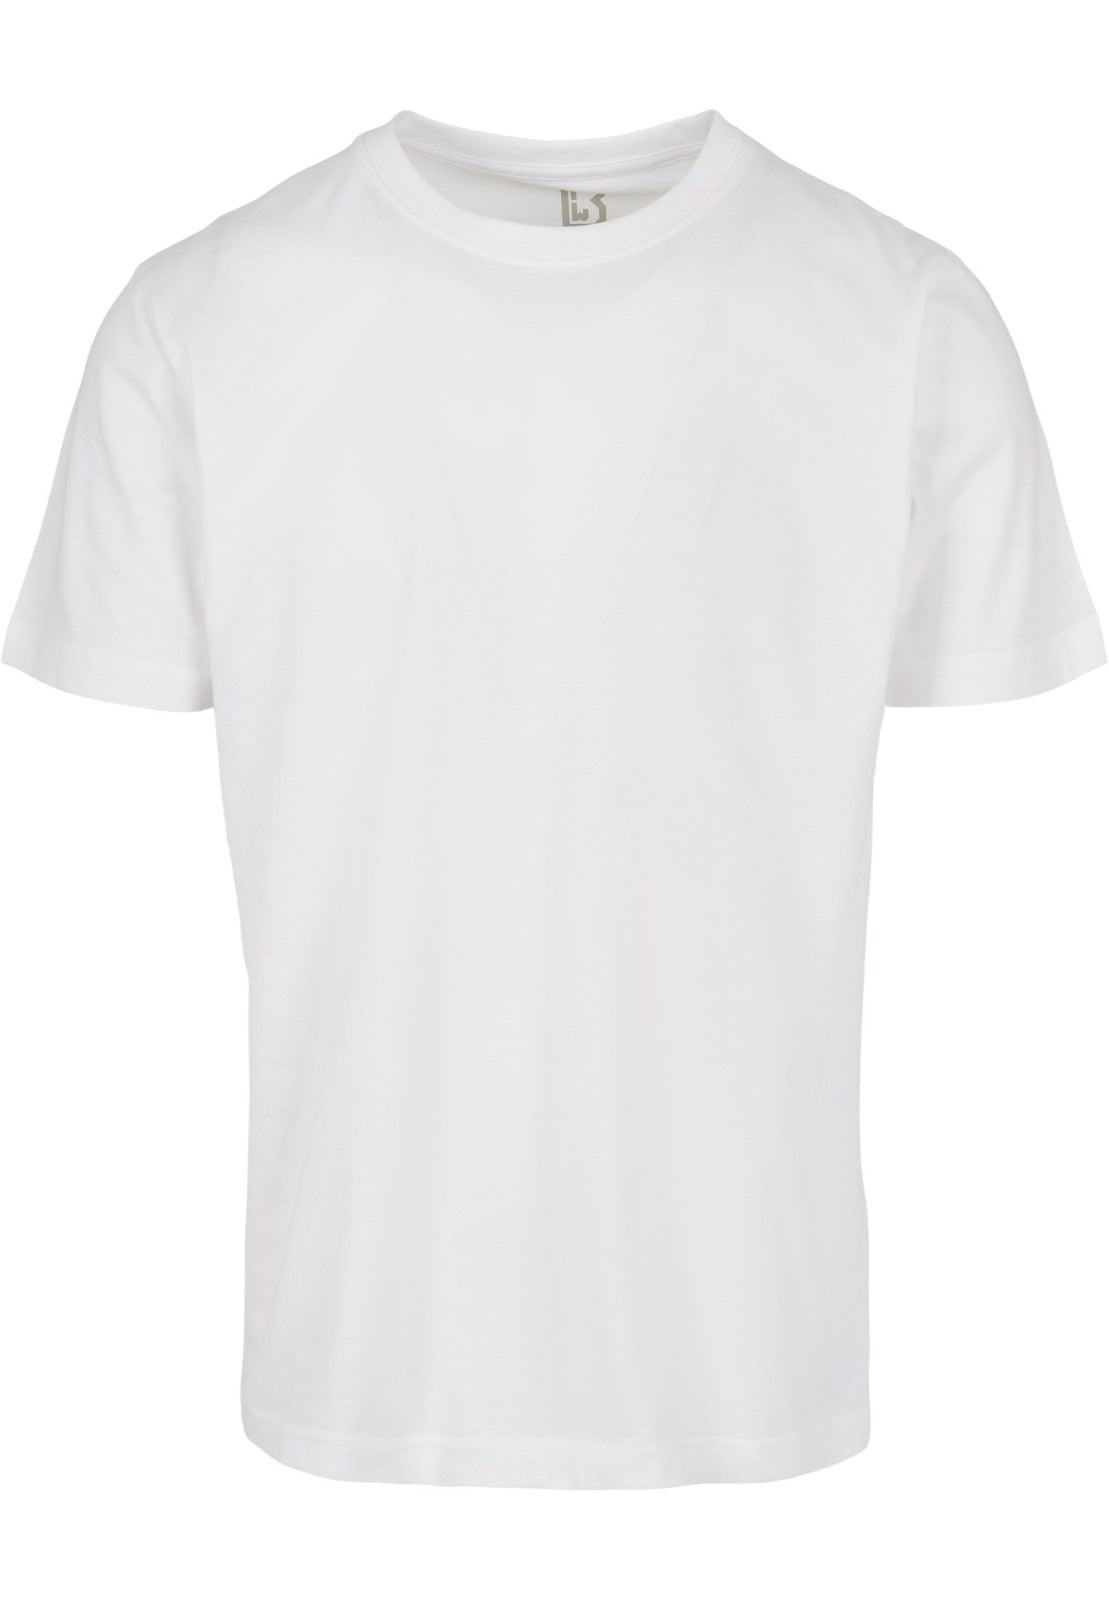 3-pack Brandit T-shirt (8 Colors | s - 7xl) White / s T-shirt Brandit